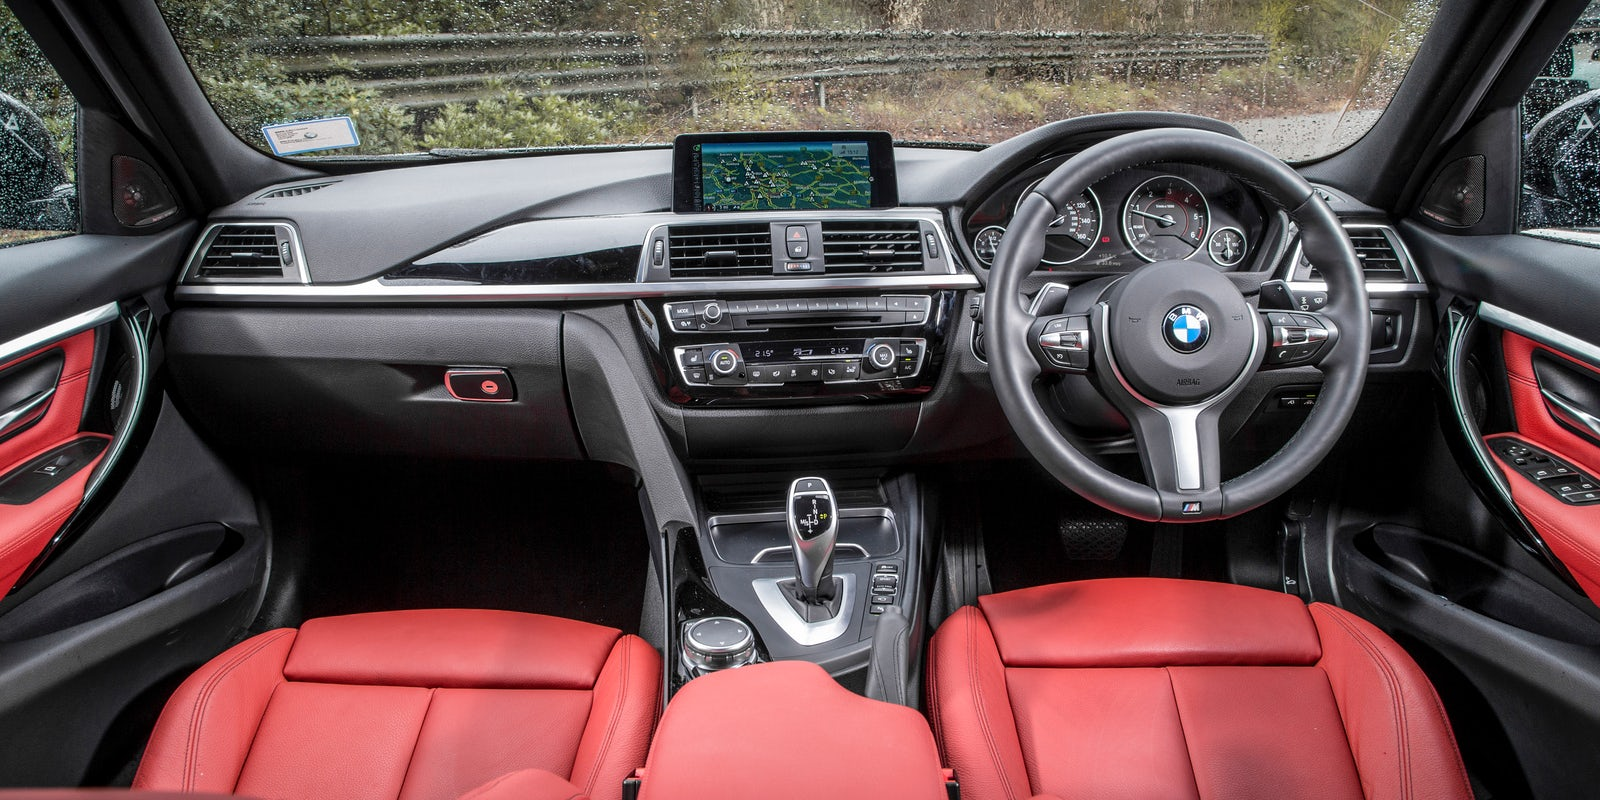 bmw 3 series interior | www.indiepedia.org